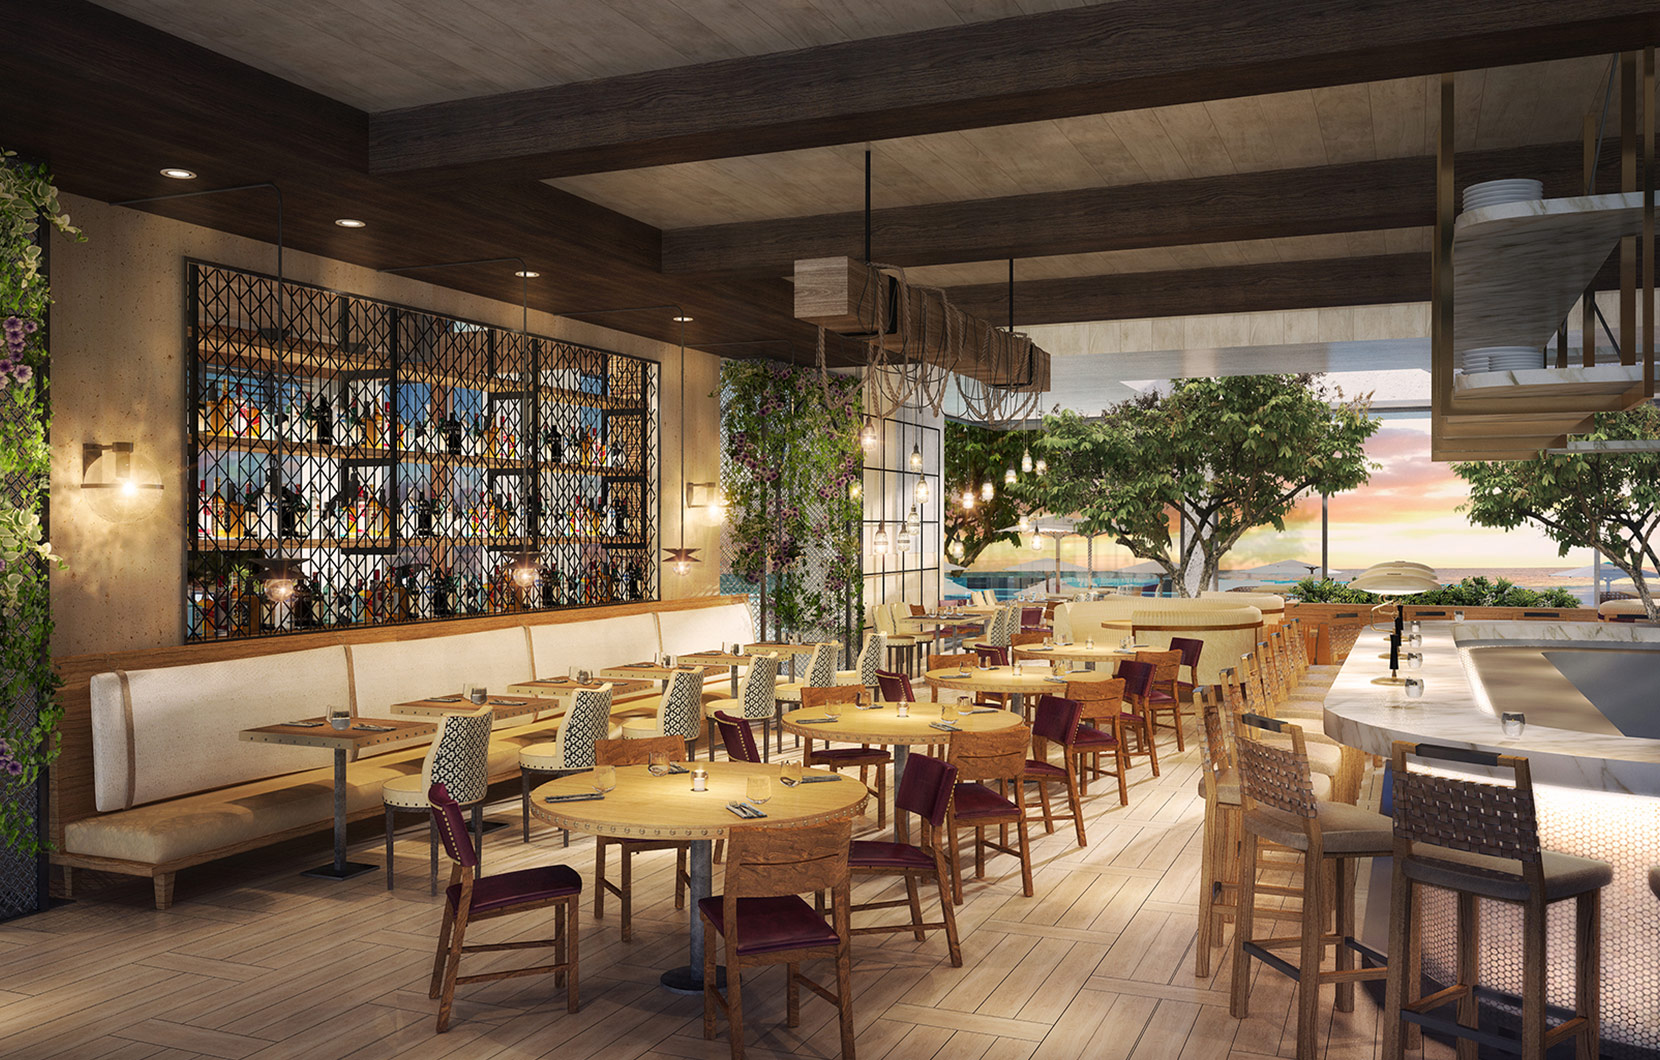 A view of Herringbone's indoor/outdoor dining room.